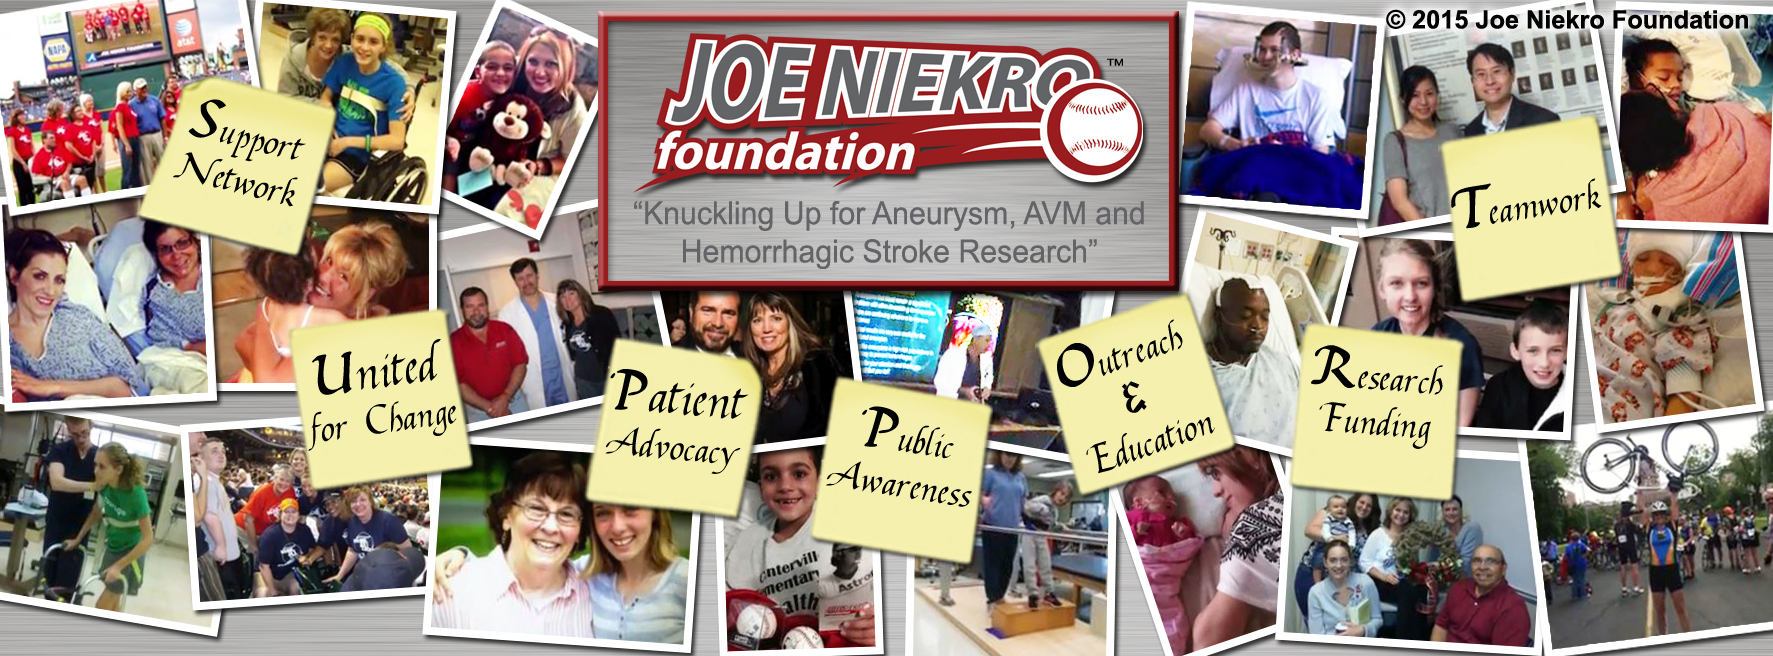 https://www.joeniekrofoundation.com/home-billboards/2631/attachment/survivor-banner-tm/